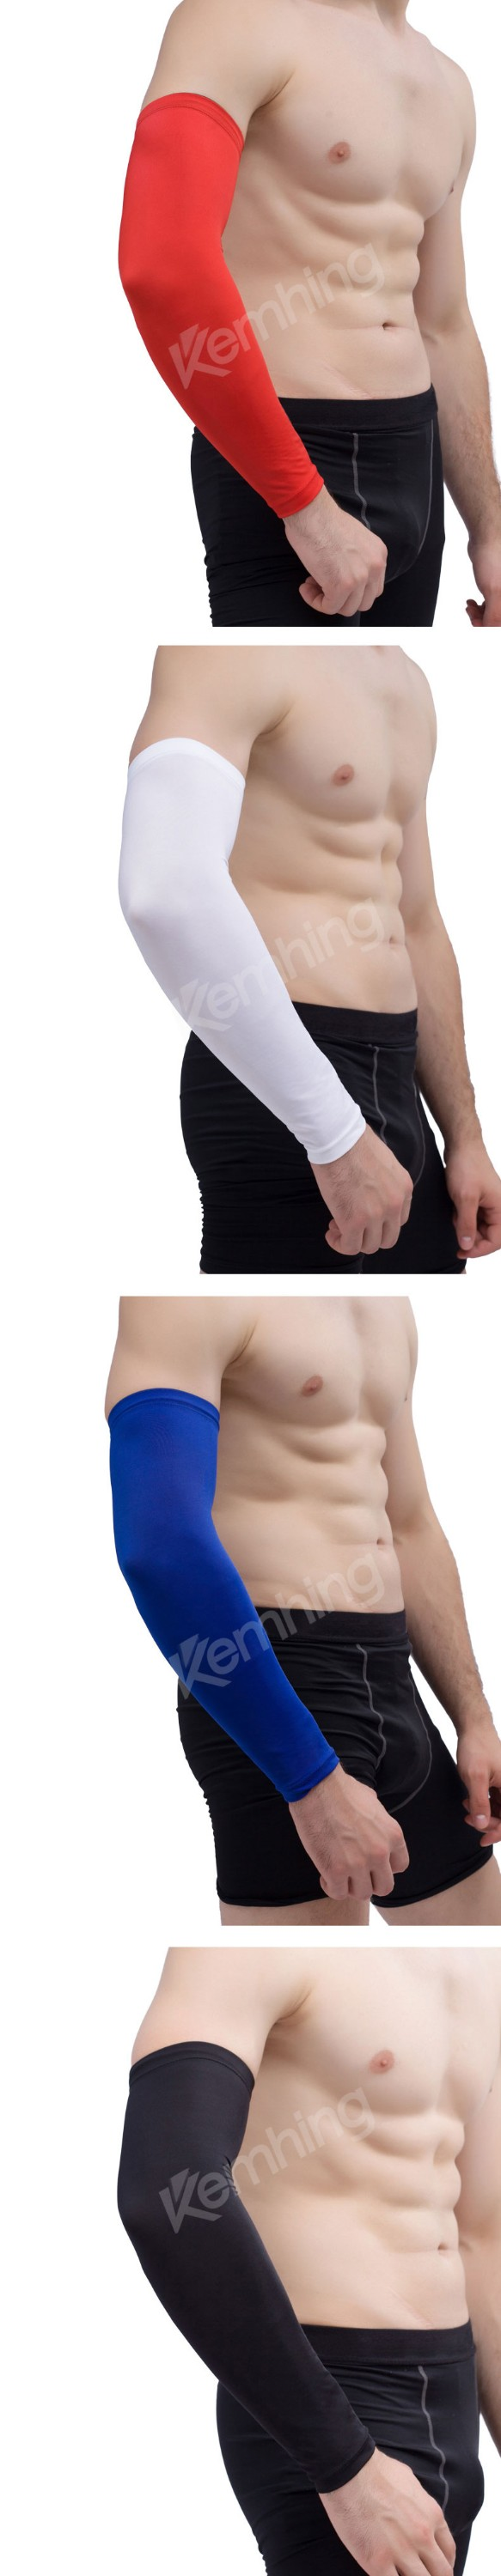 2017 new compression sleeve Sports Arm Sleeves football elbow sleeve UV protector arm support